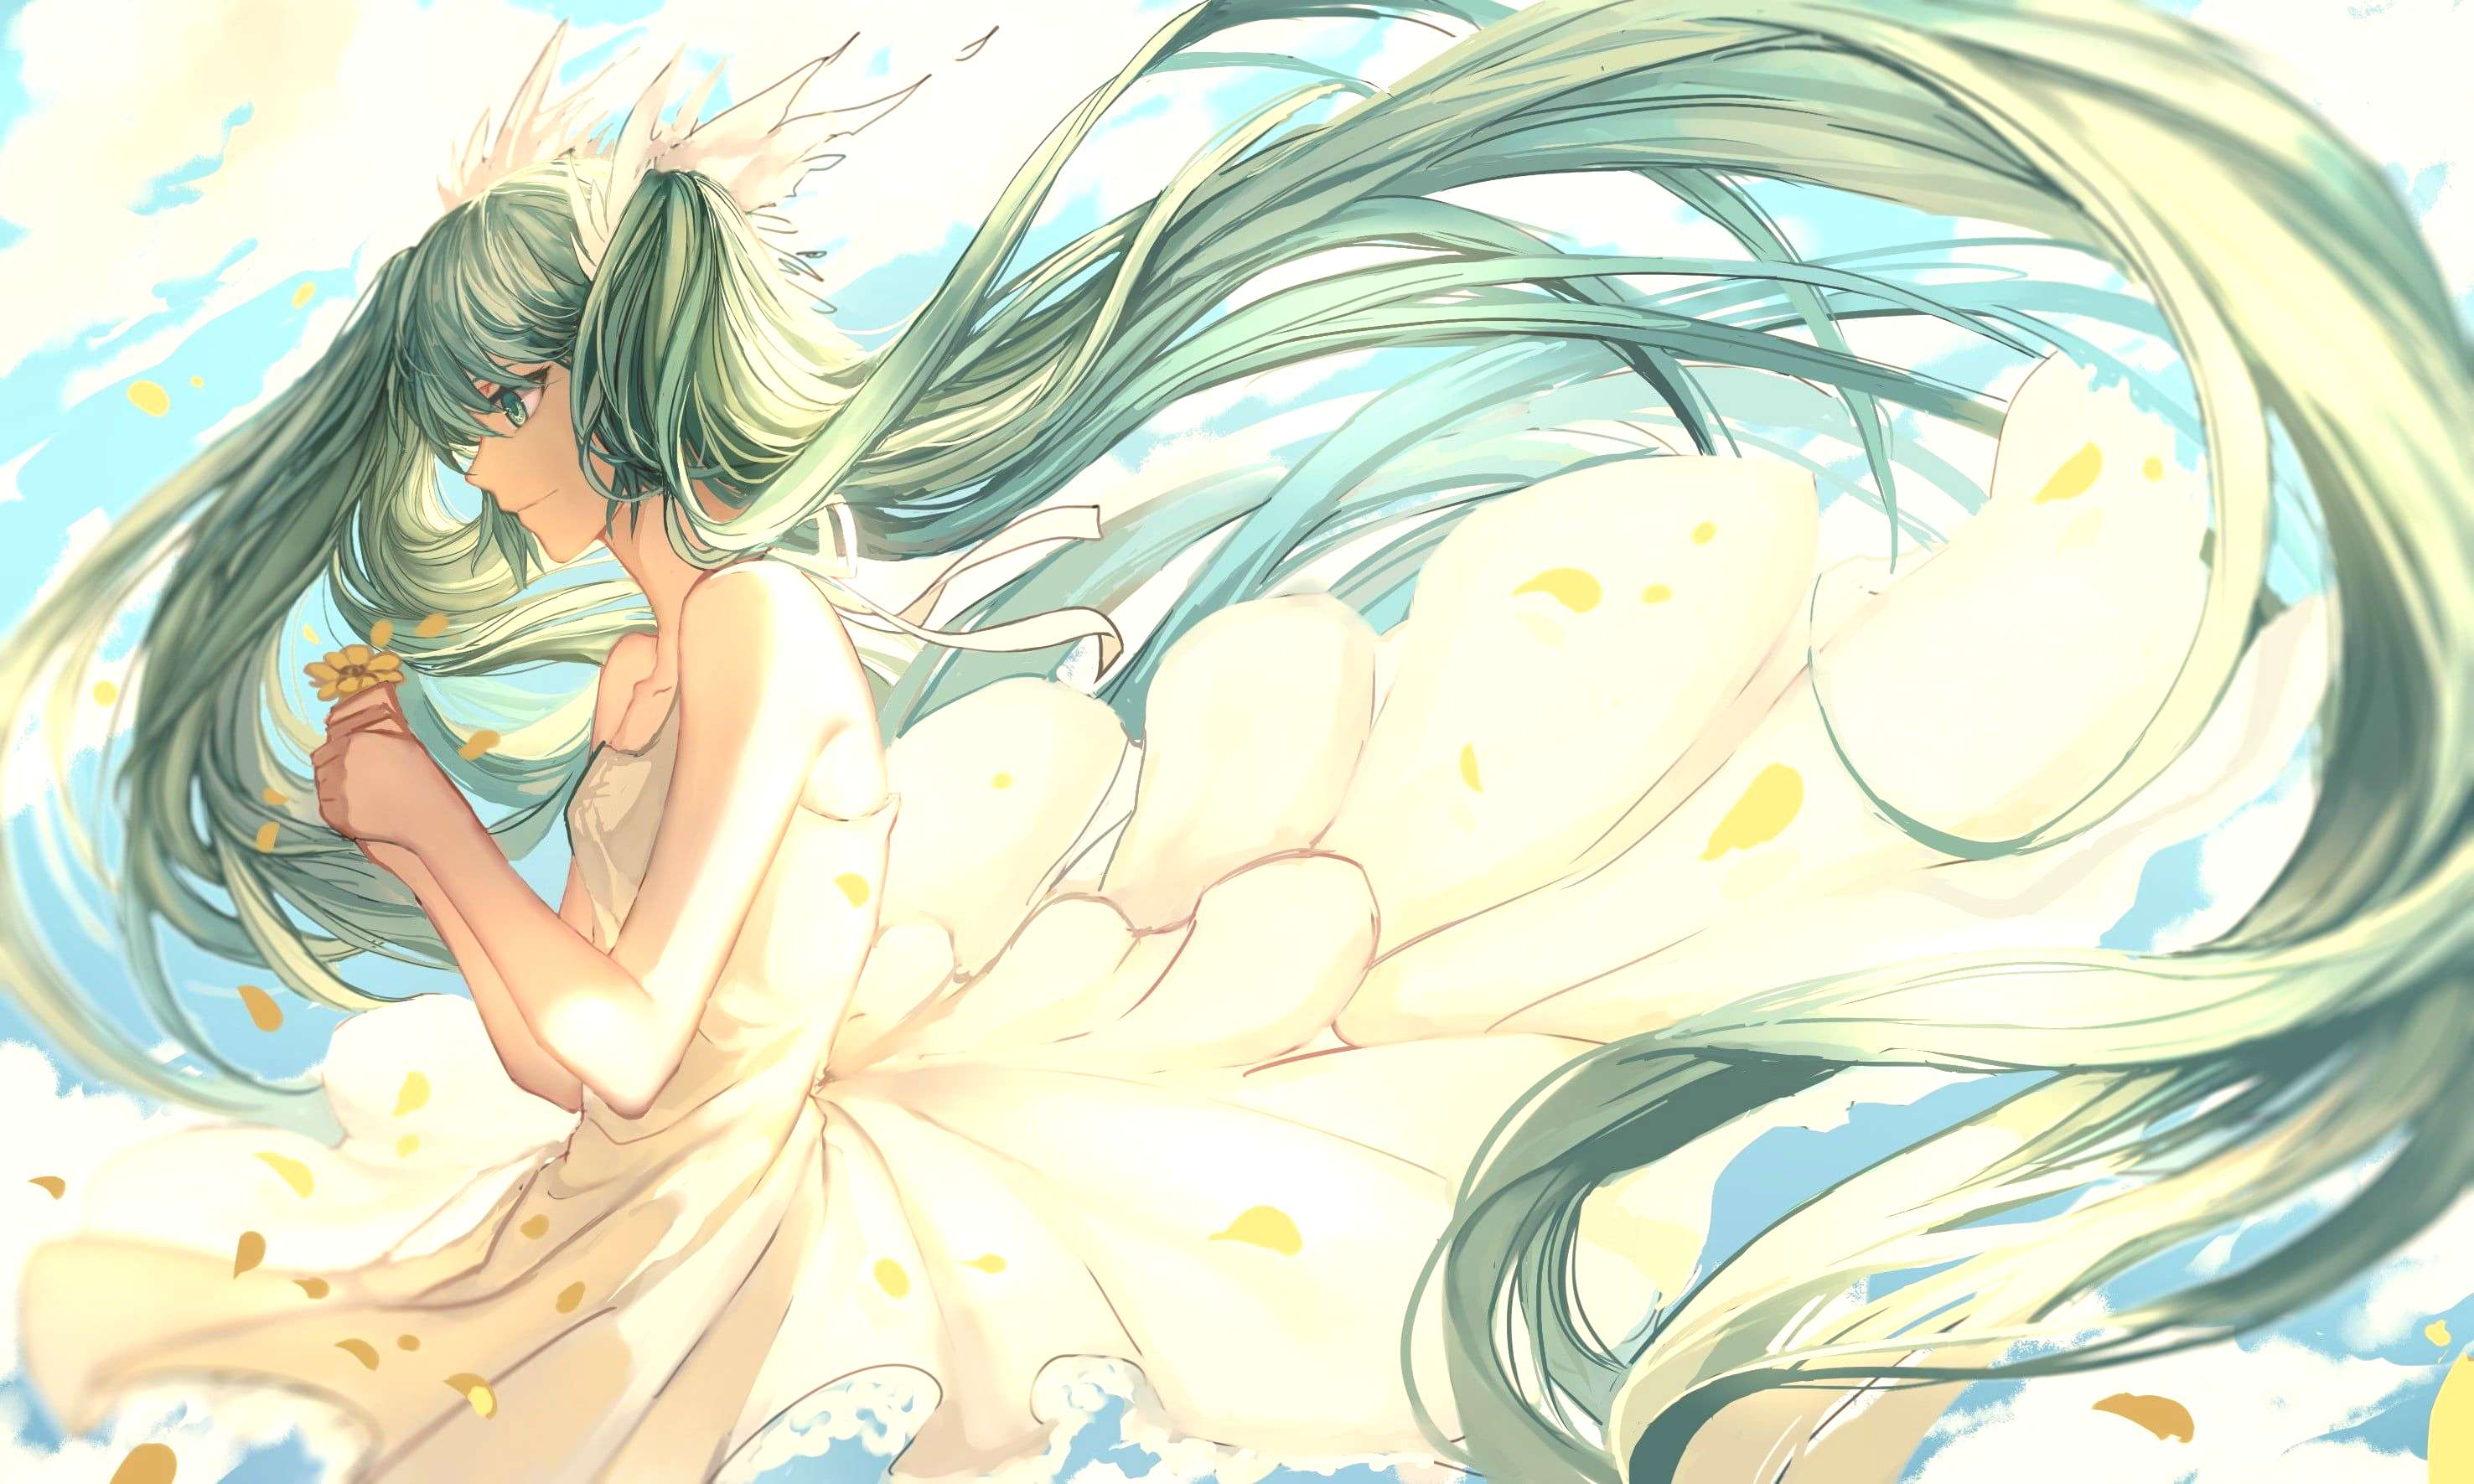 Hatsune Miku long hair white dress flower petals anime girls